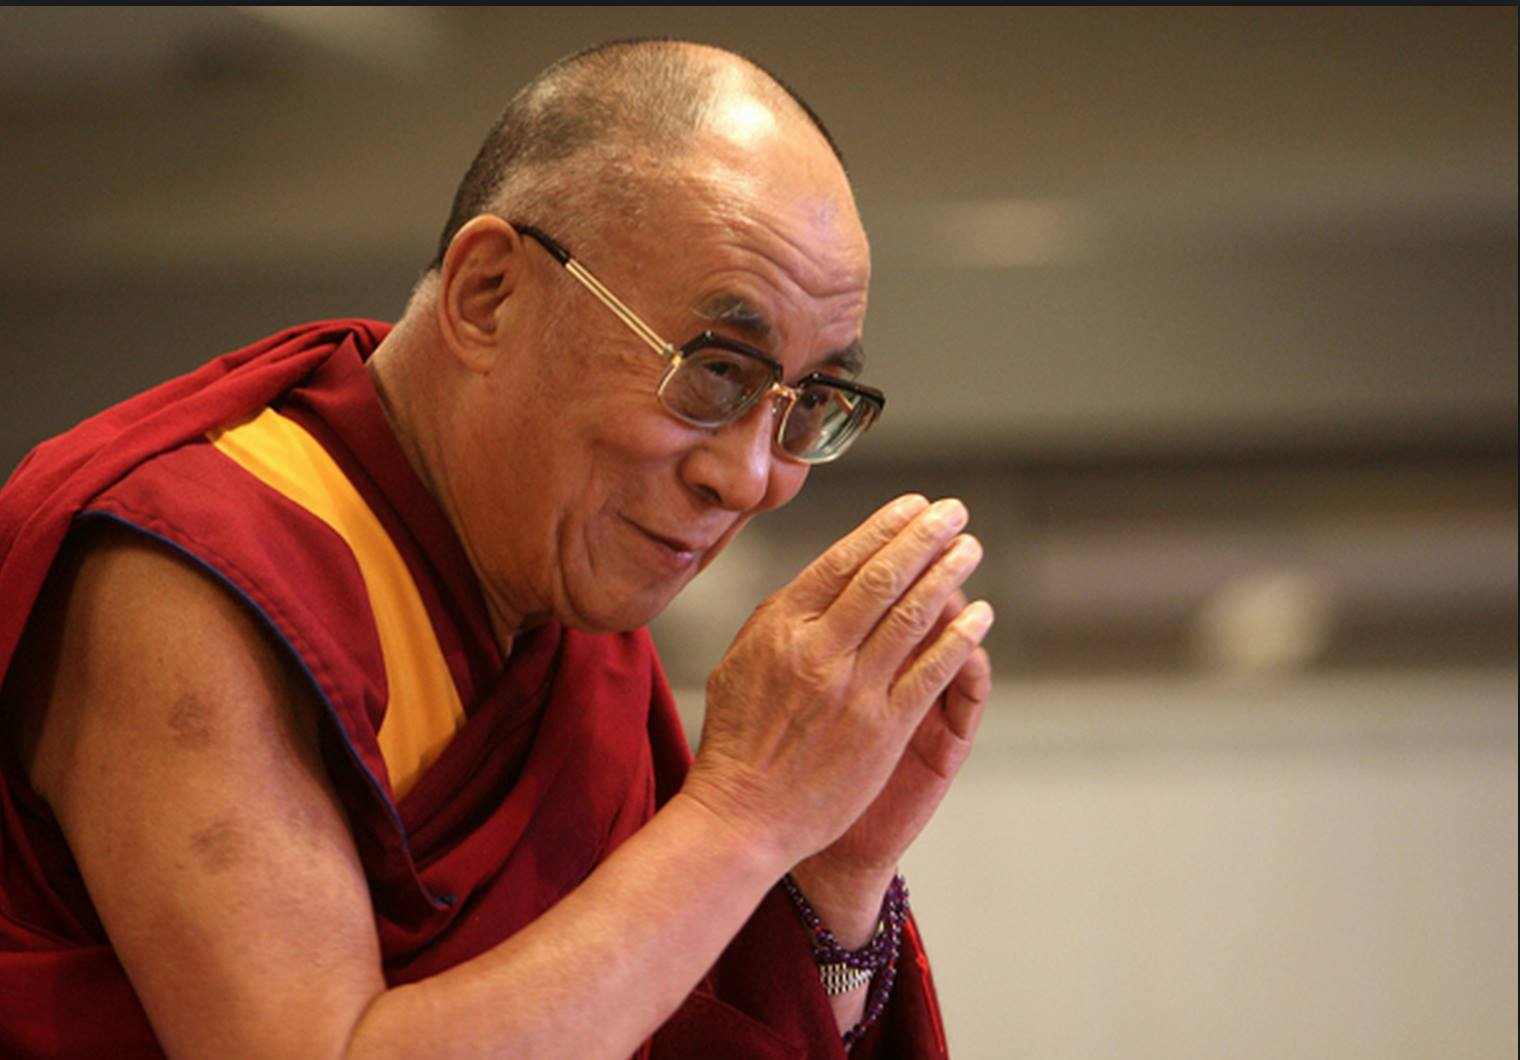 His Holiness the Dalai Lama: According to Bhavavineka, it is perceived that the insight into the no-self of phenomena is more related to the attainment of omniscient states, than attainment of liberation from samsara.